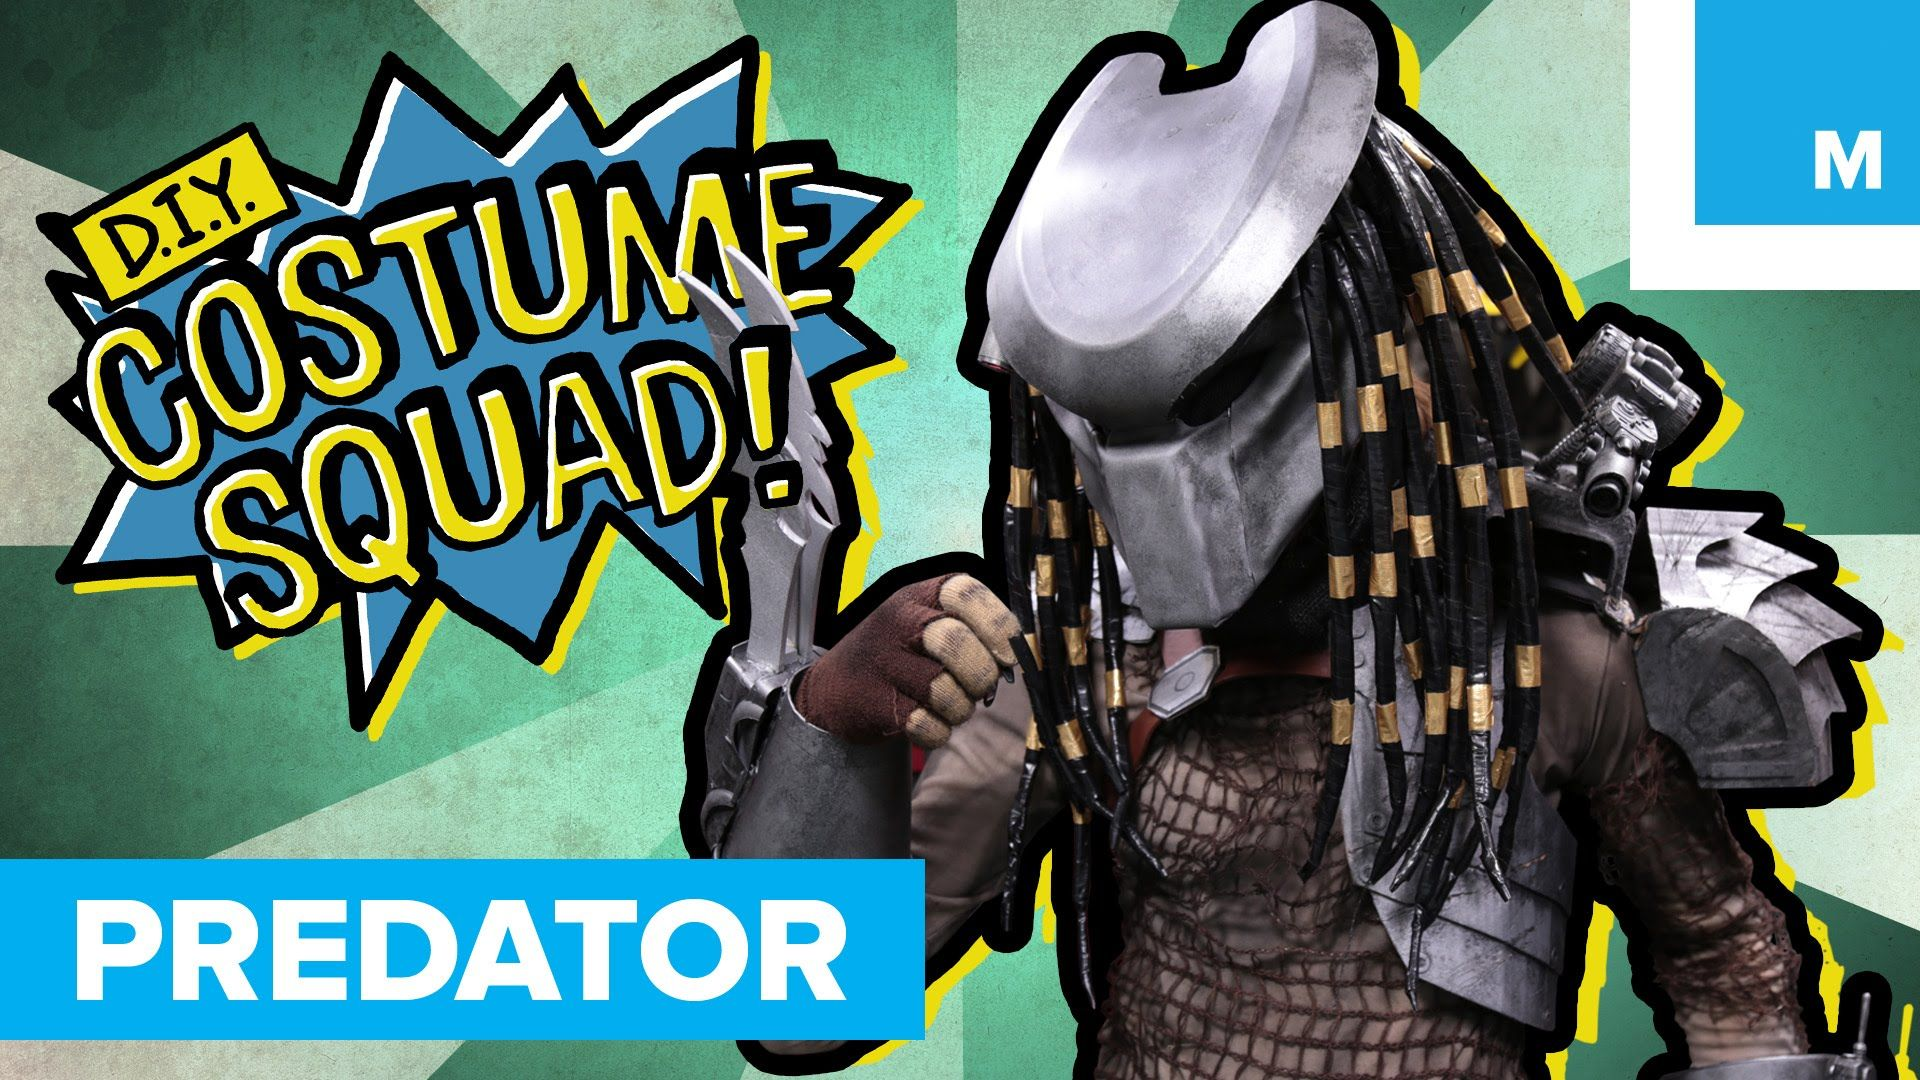 Make Your Own Predator Costume | DIY Costume Squad  sc 1 st  Pinterest & Make Your Own Predator Costume | DIY Costume Squad | Cosplay Tips ...